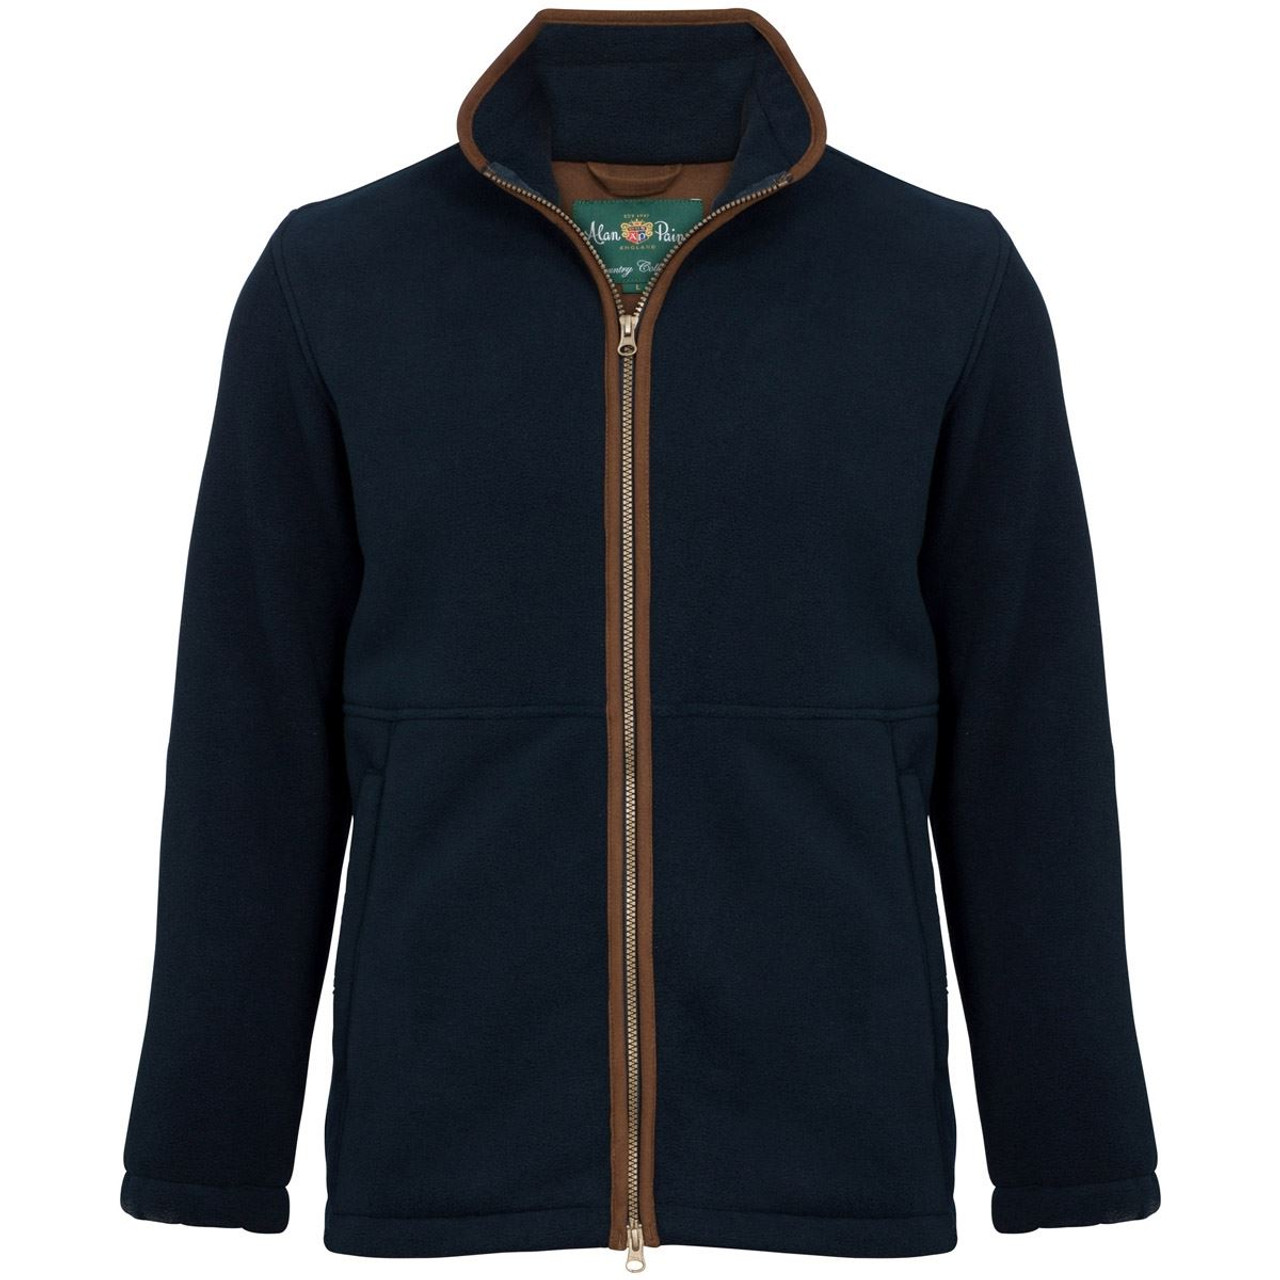 Alan Paine Aylsham Windblock Fleece Jacket